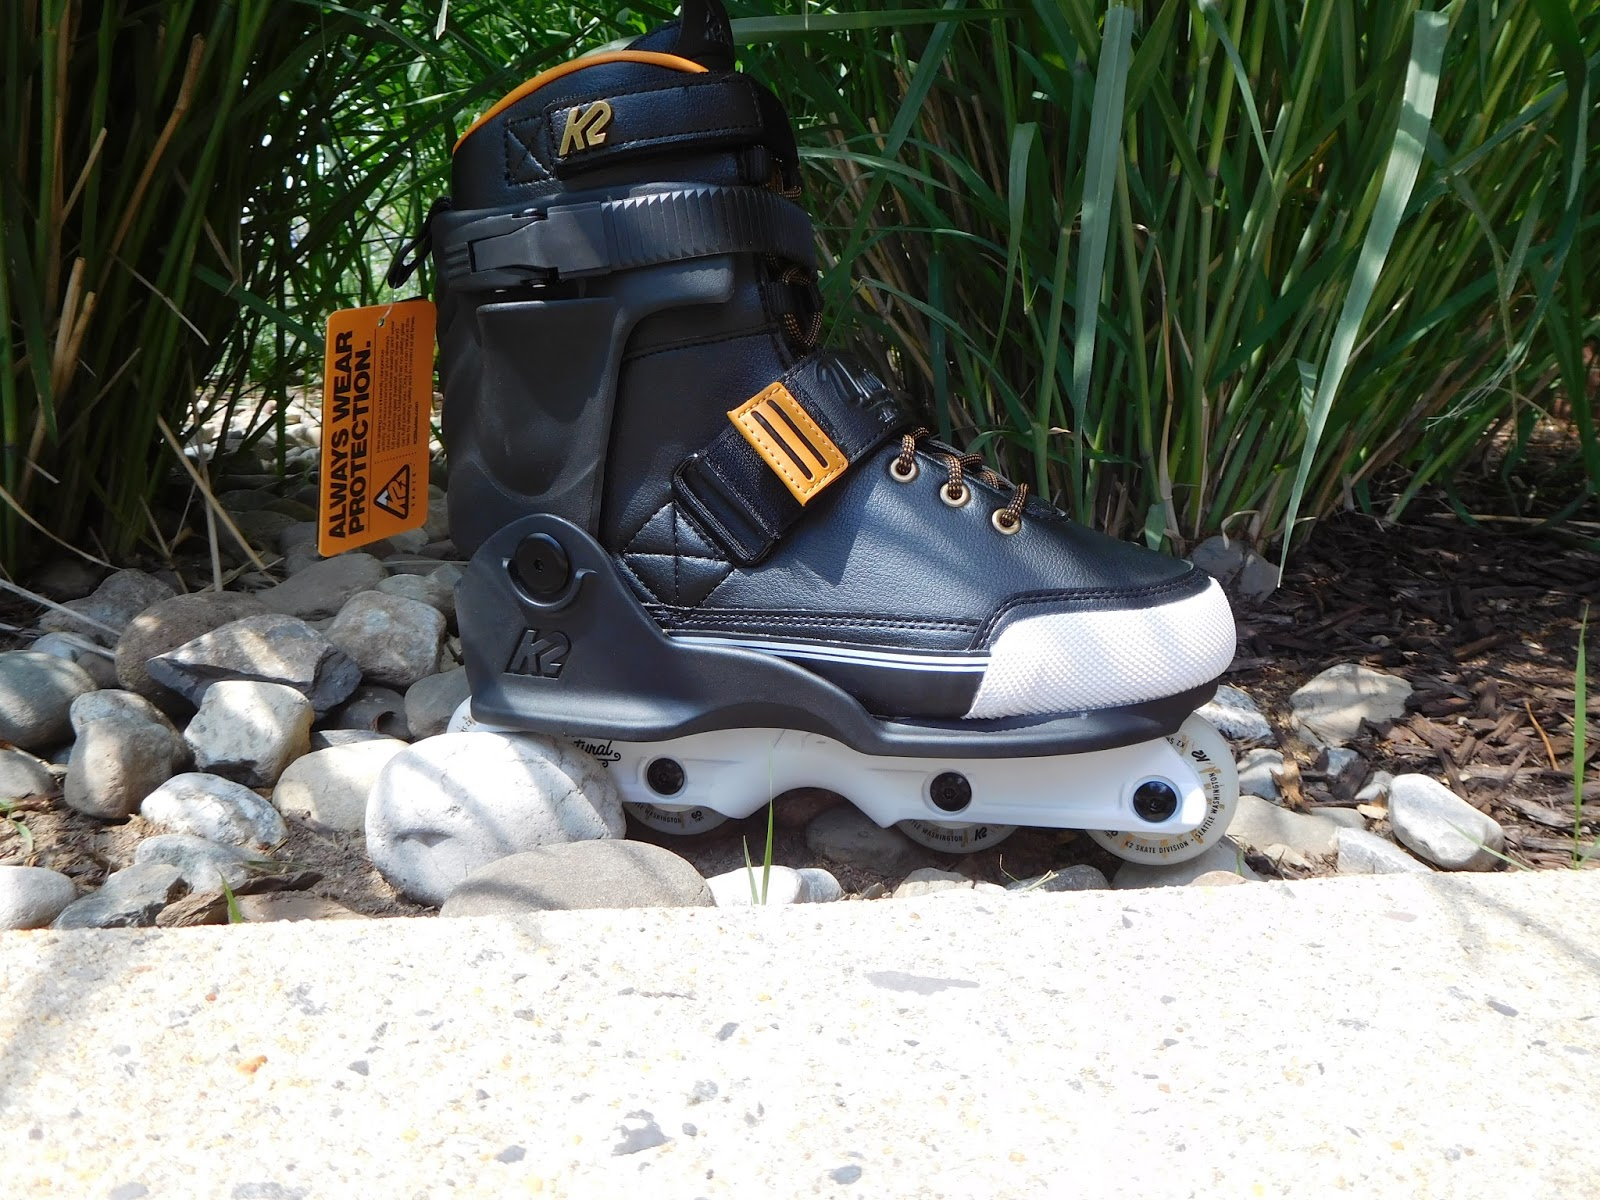 Alpine Ski Shop Daily Drops K2 Unnatural Aggressive Inline Skates 11 Is Excited To Have This Great Skate In The Store Features An Extended Flat Rocker Frame With 60mm Wheels